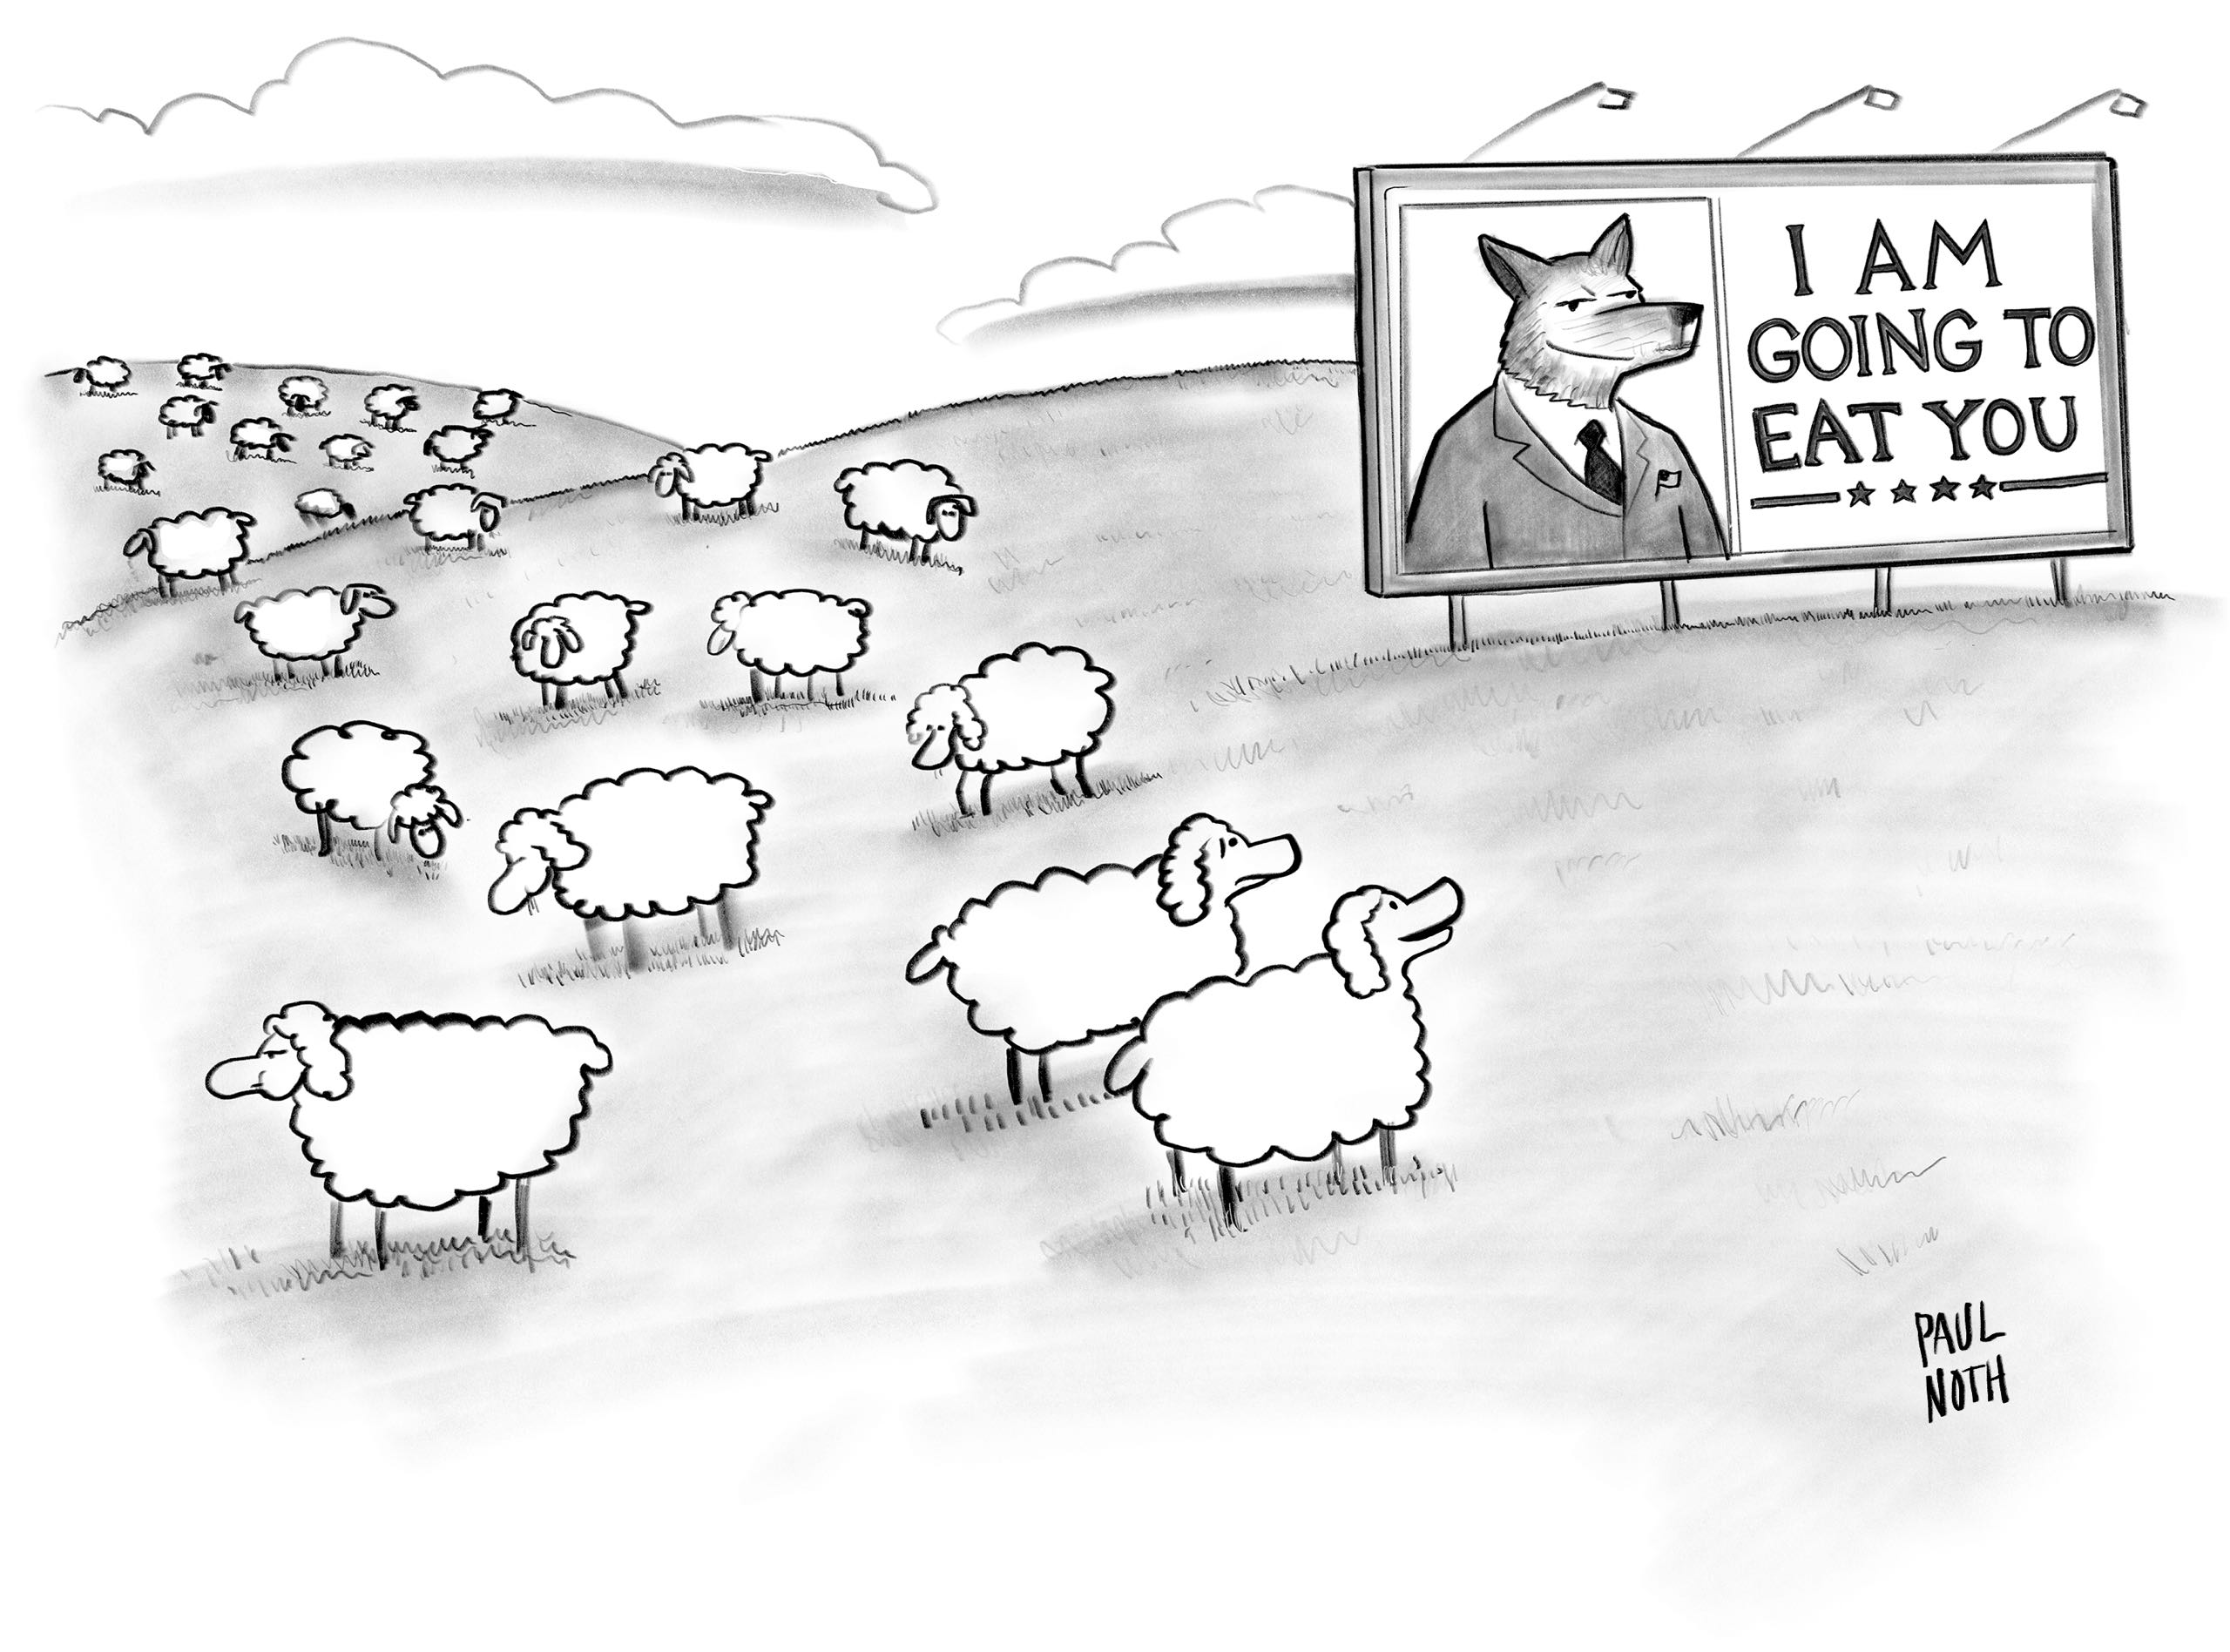 Paul Noth, New Yorker Donald Trump cartoon, Wolf Crossing